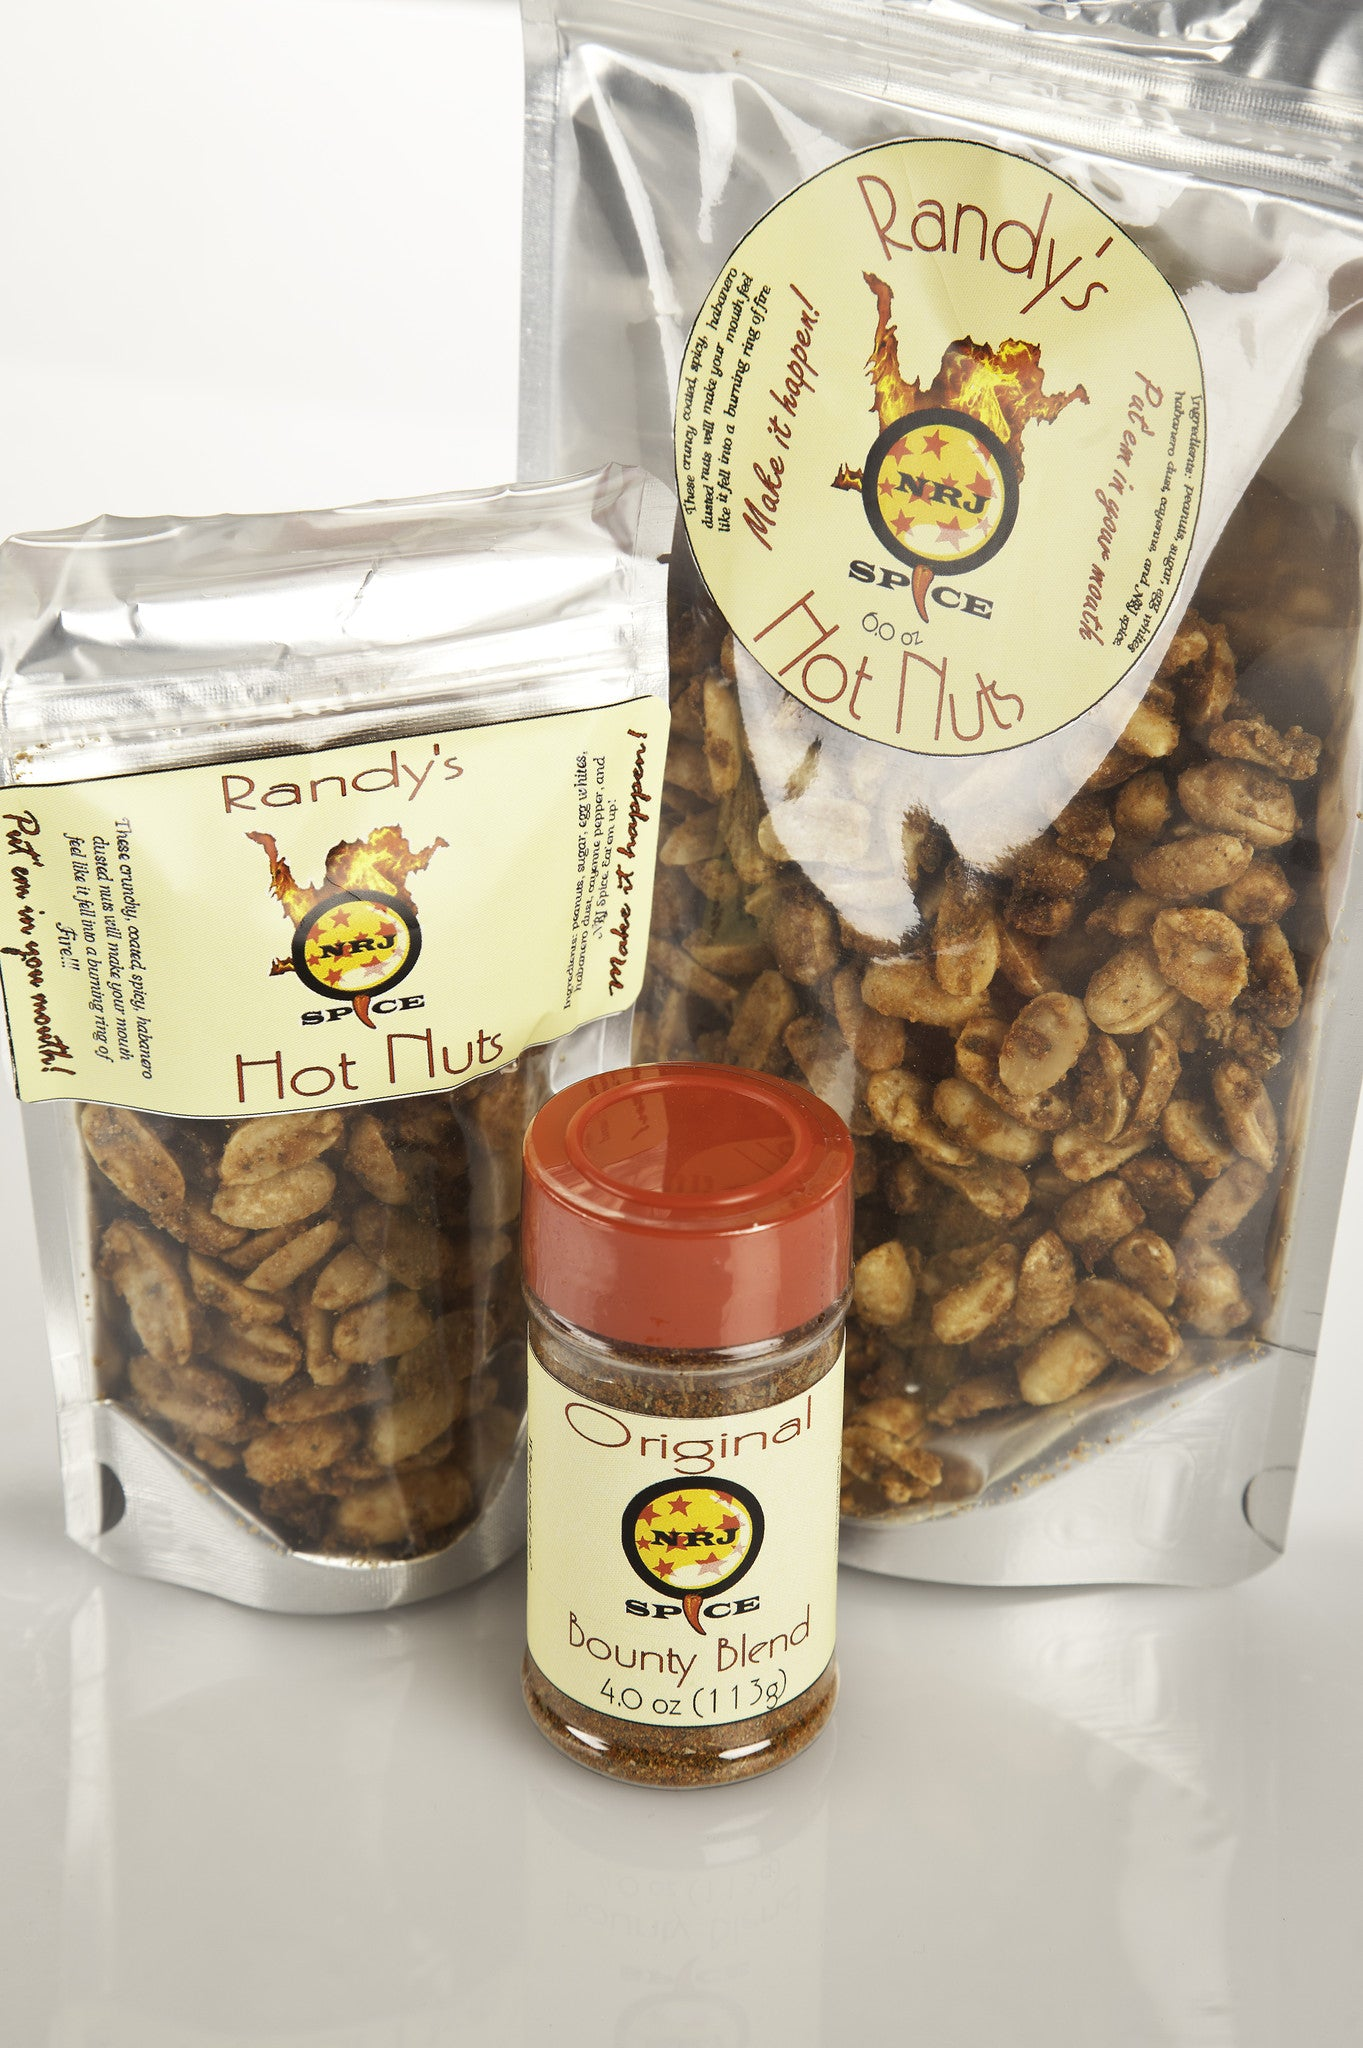 Randy's Hot Nuts 6 oz.